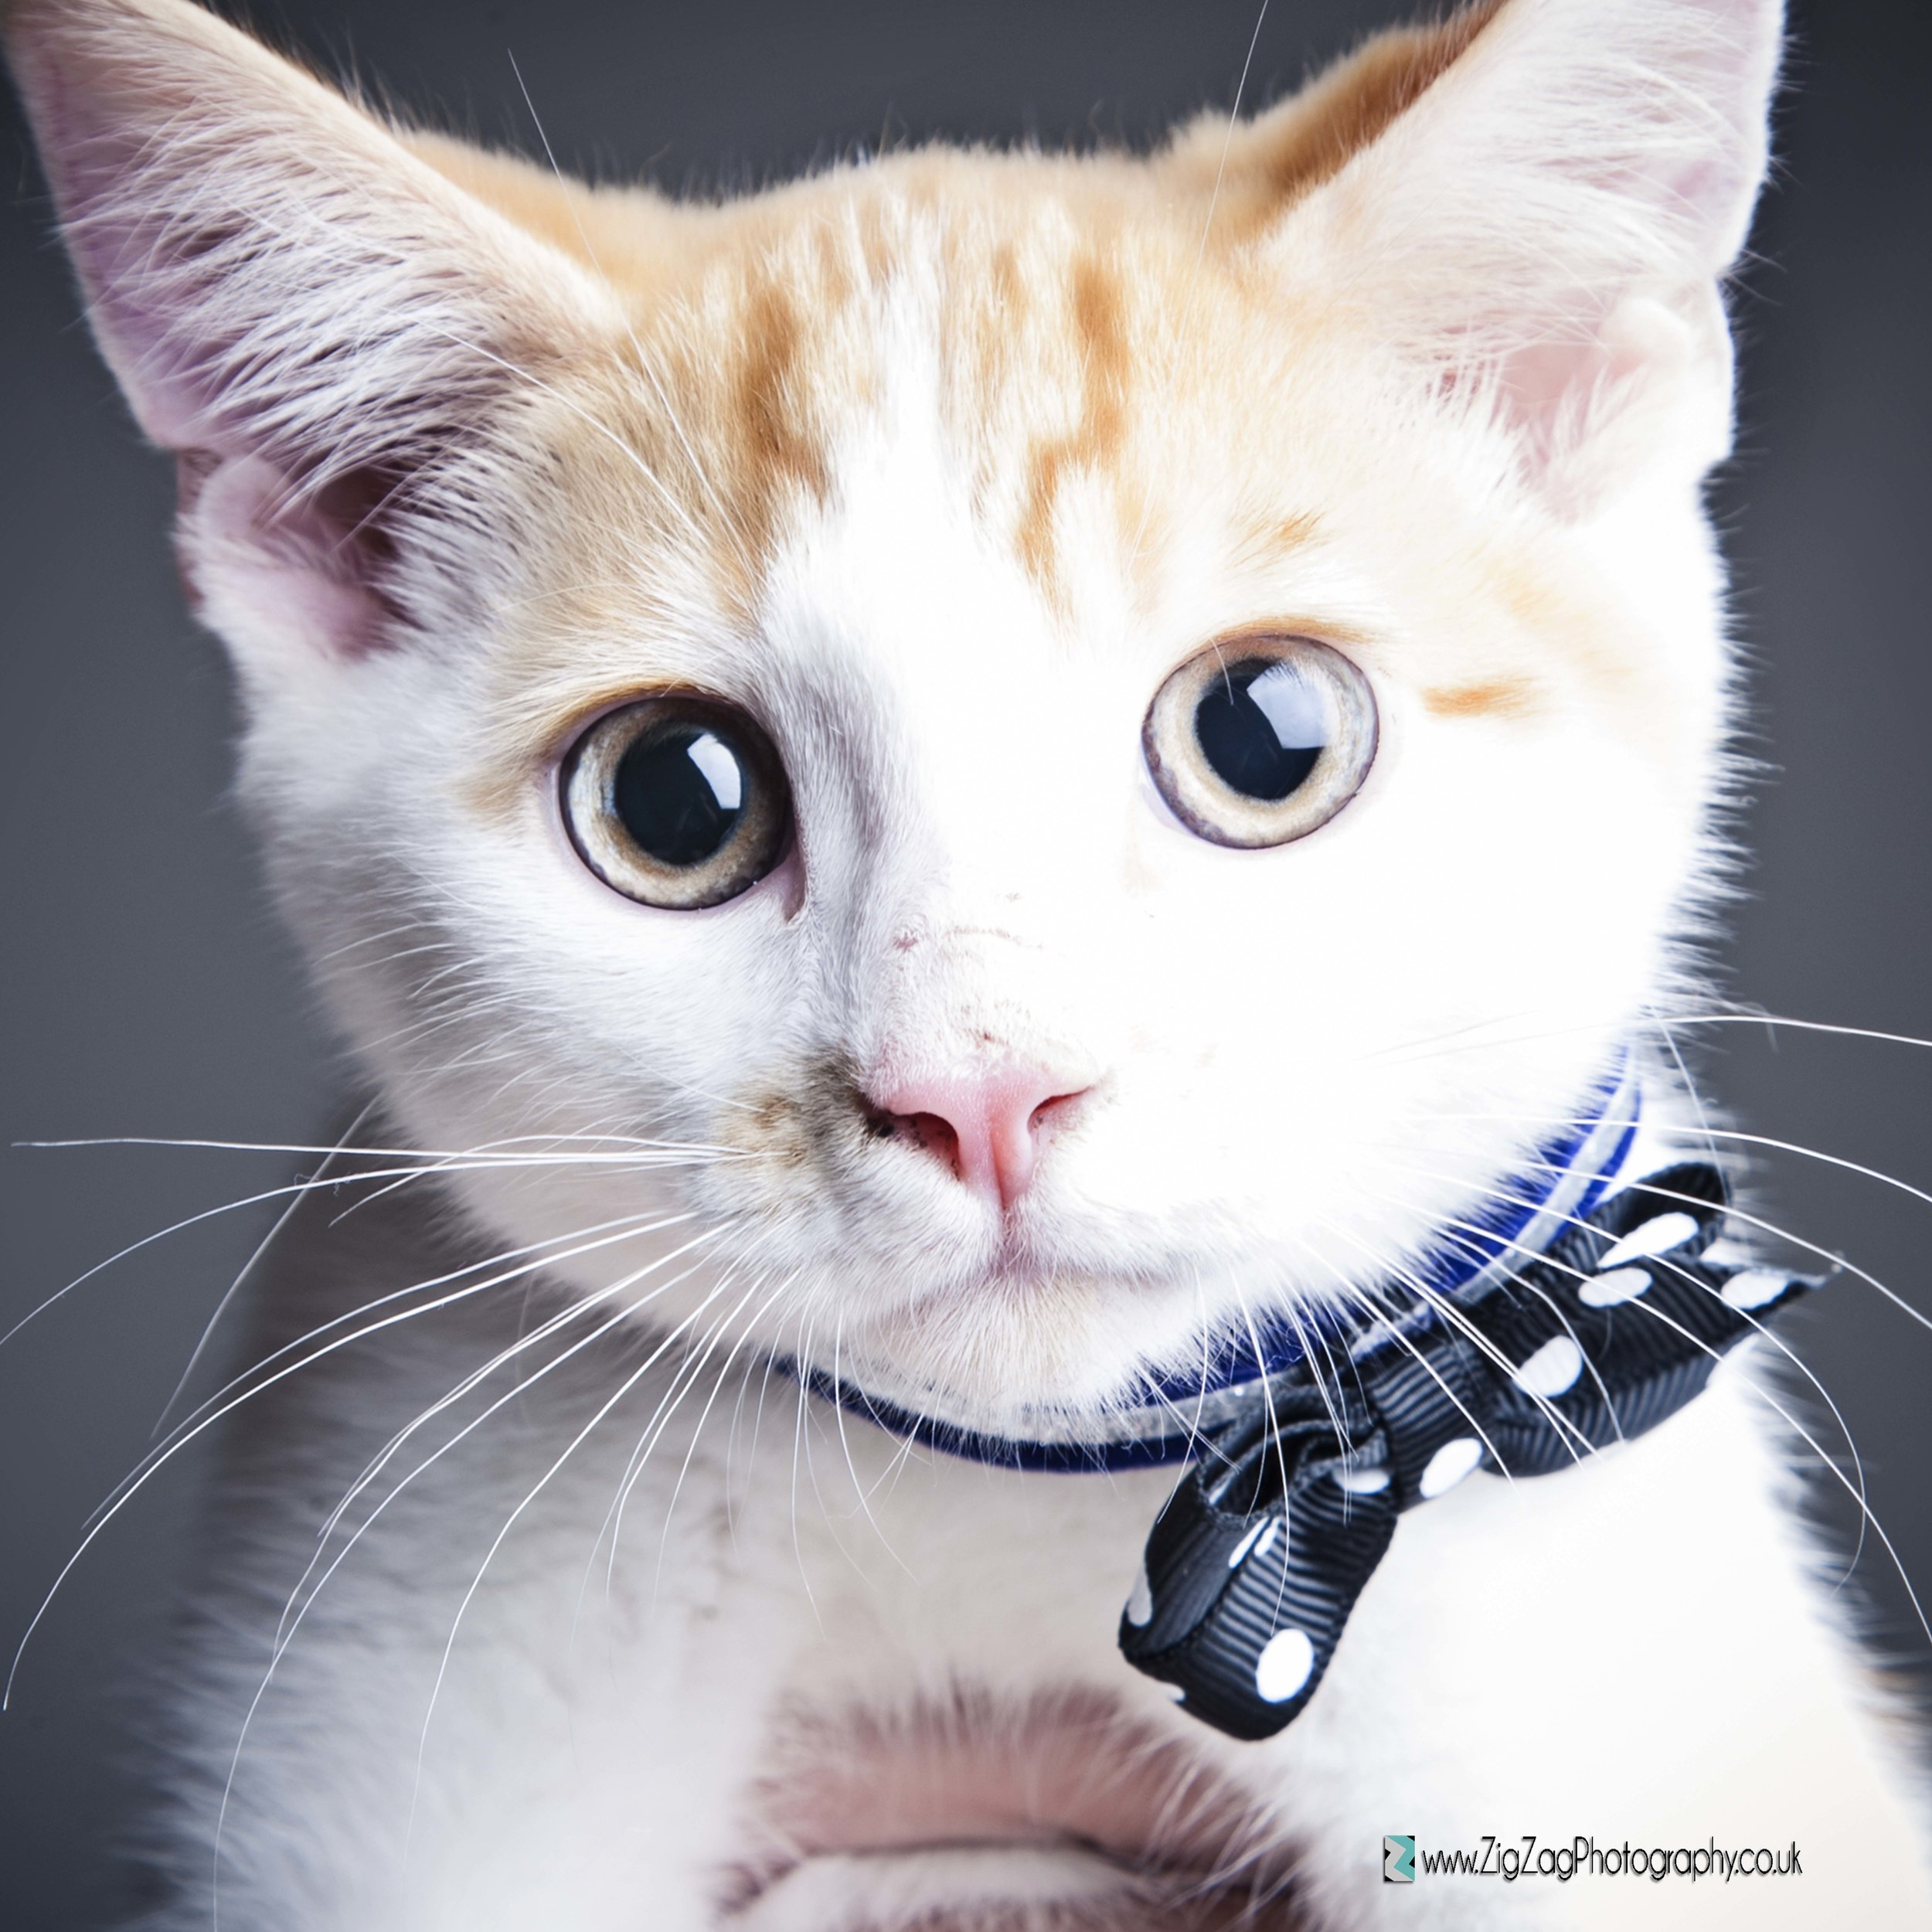 photography-leicester-studio-photoshoot-session-pets-cat-animals-kitten-bow-eyes-whiskers.jpg